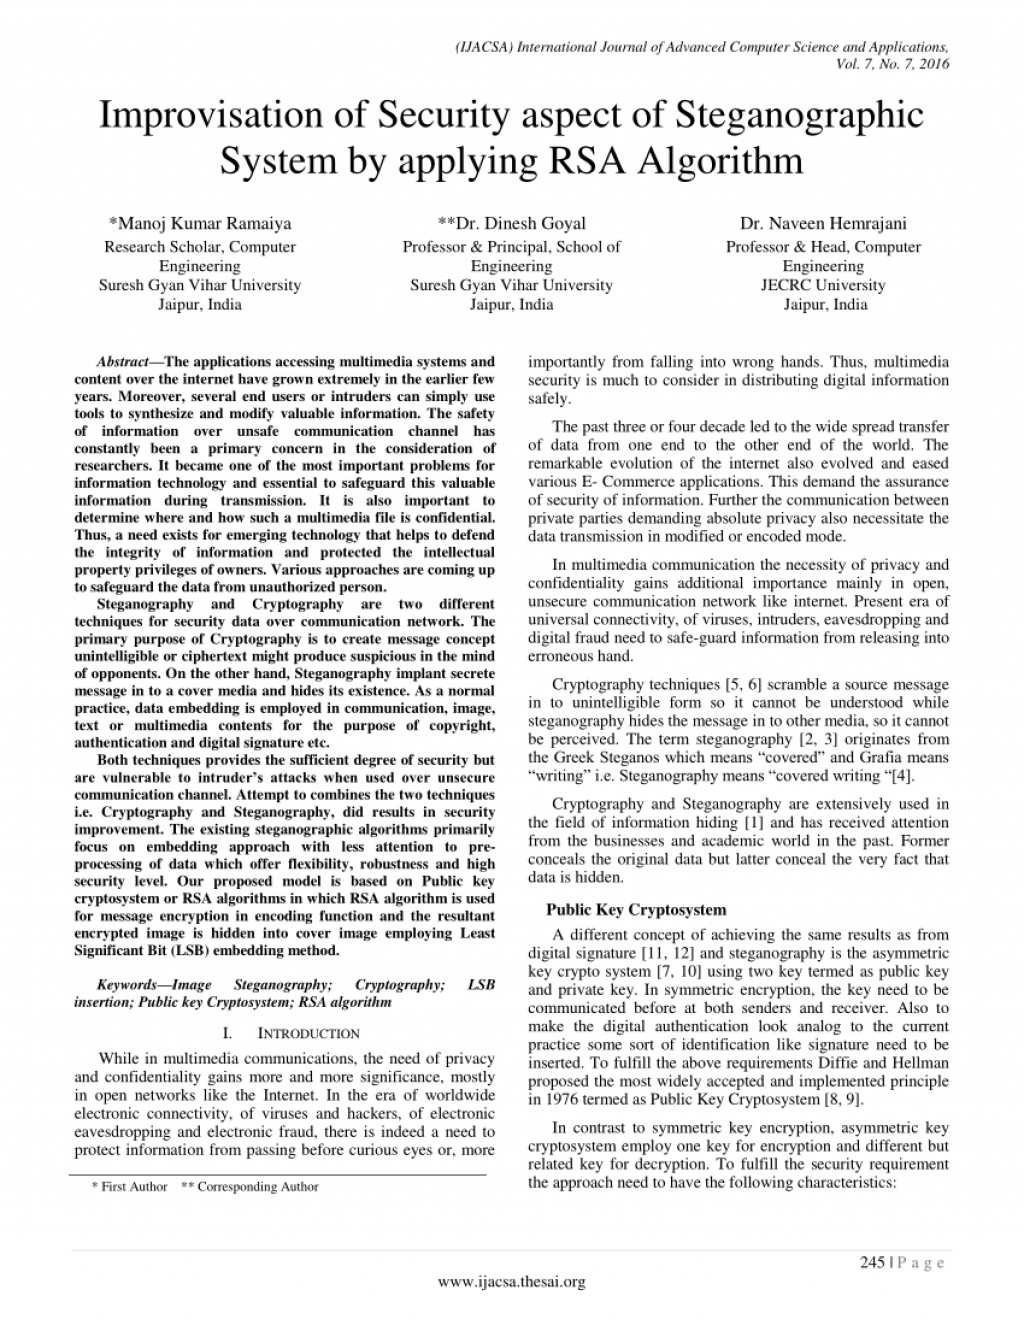 004 Cryptography Research Papers Pdf Free Download Paper Striking Large